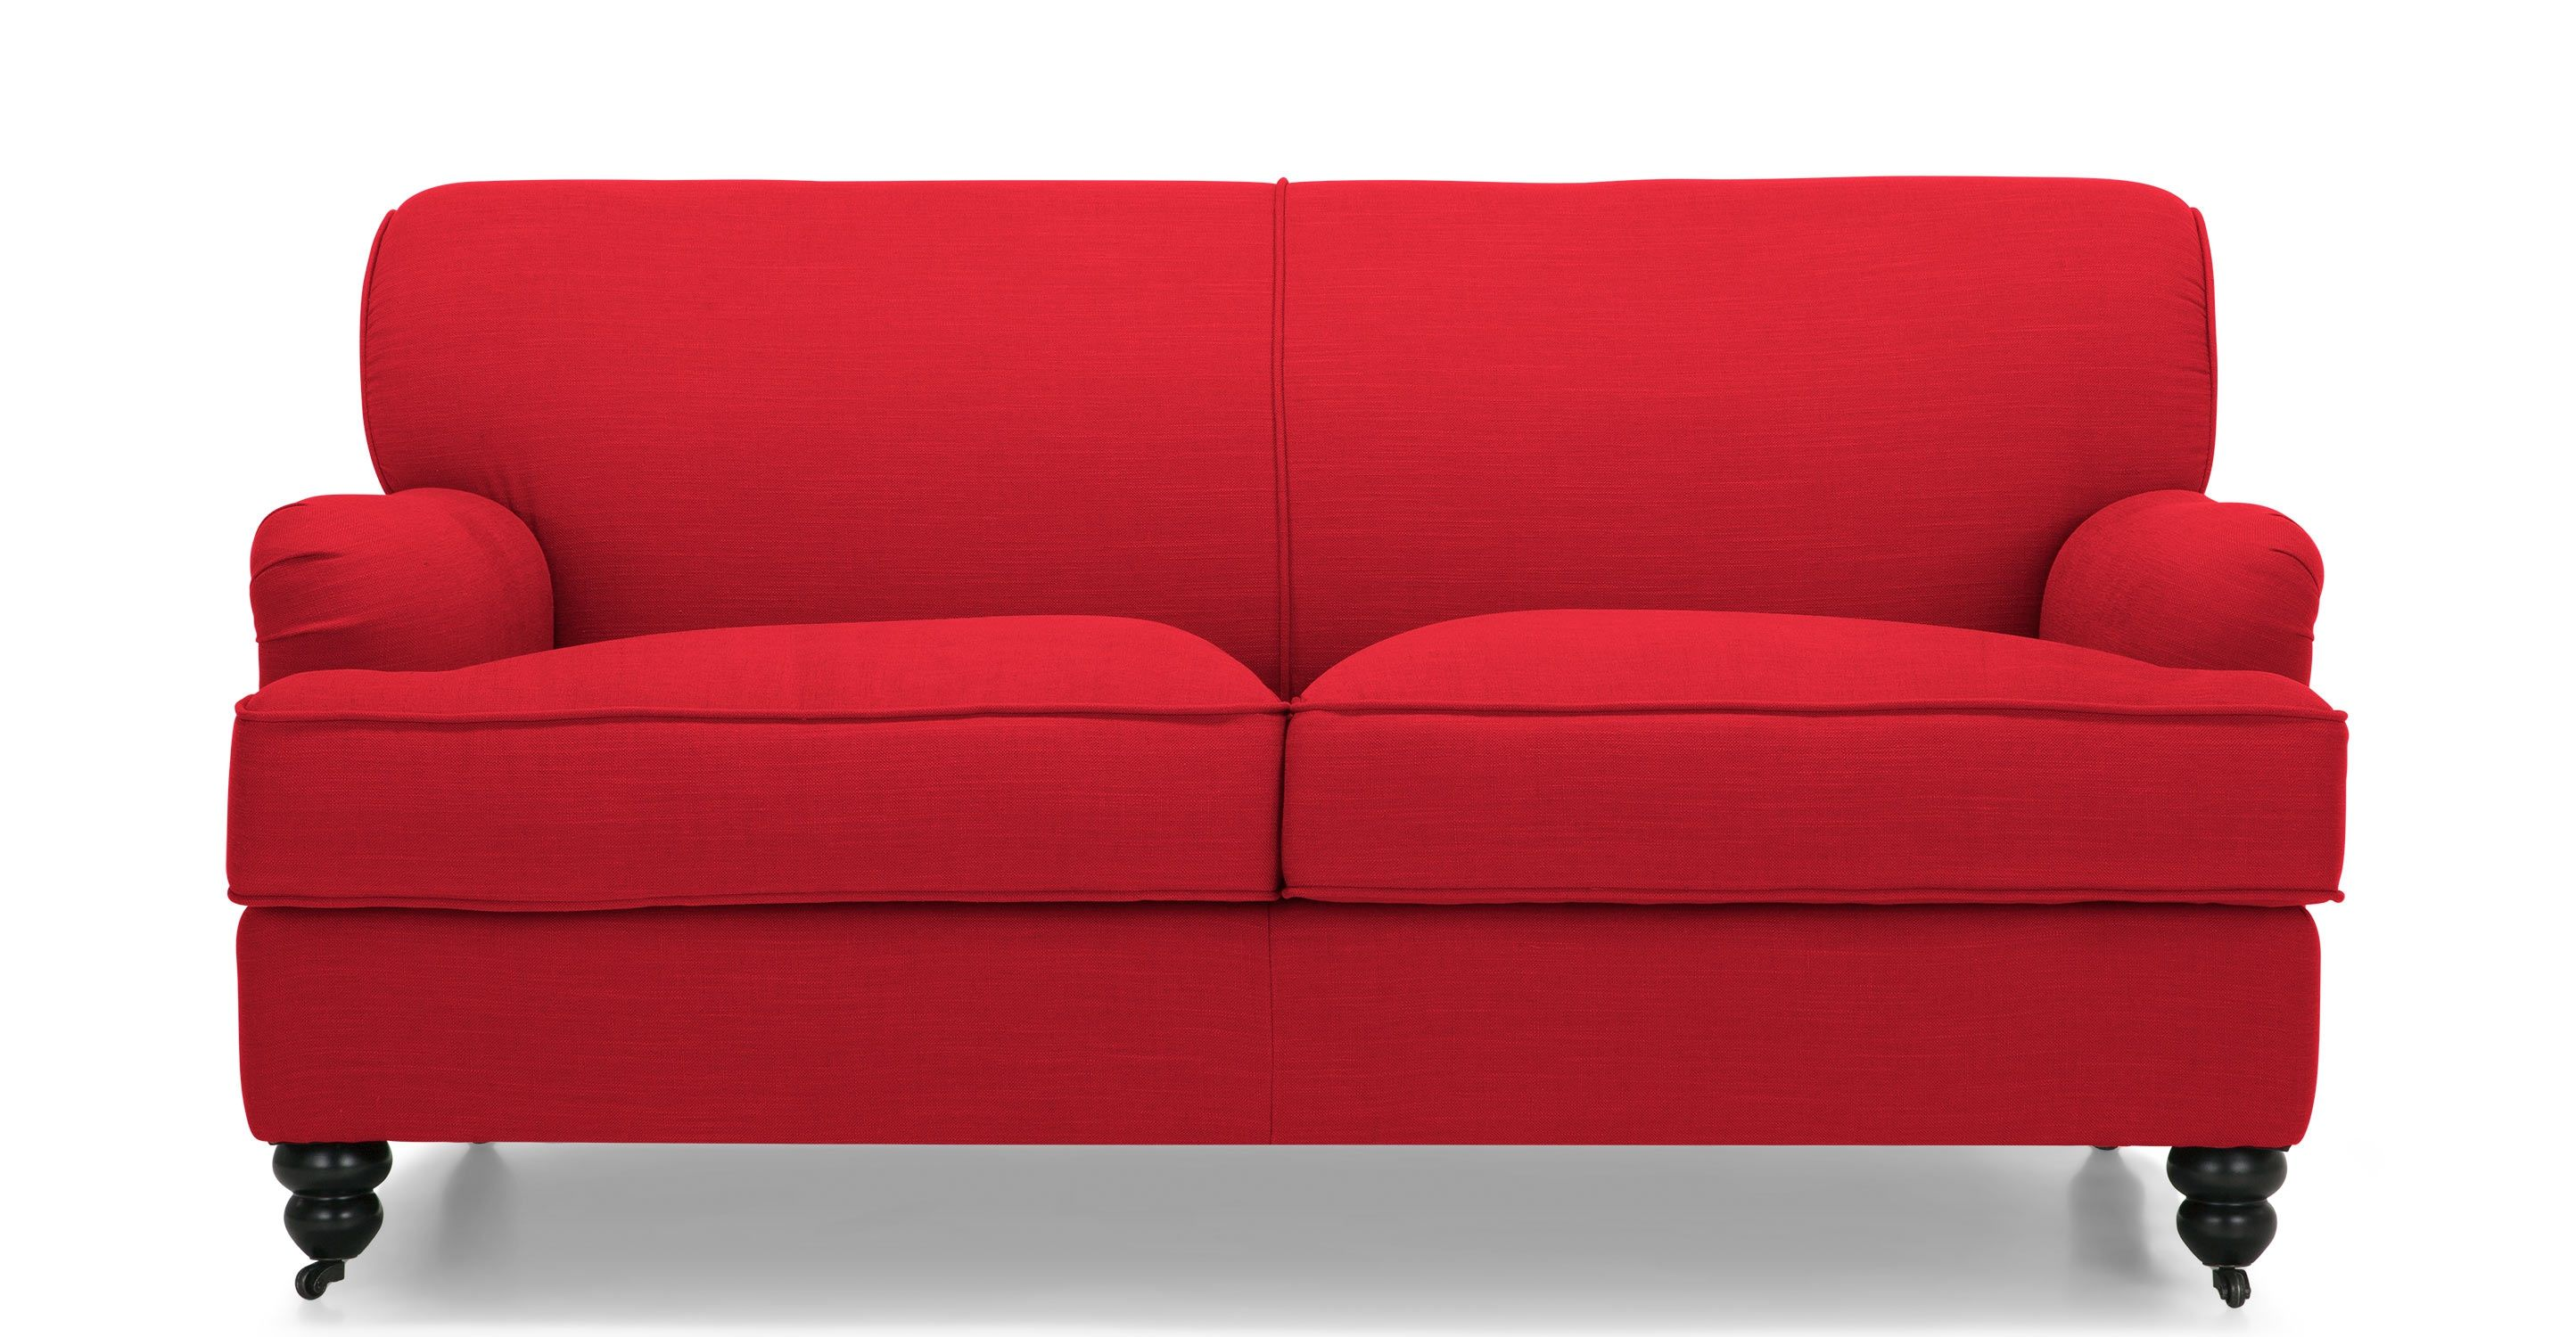 Sofa Free Shipping Europe Chesterfield Venta Chile Sofas Red Clic European Style Cattle Leather